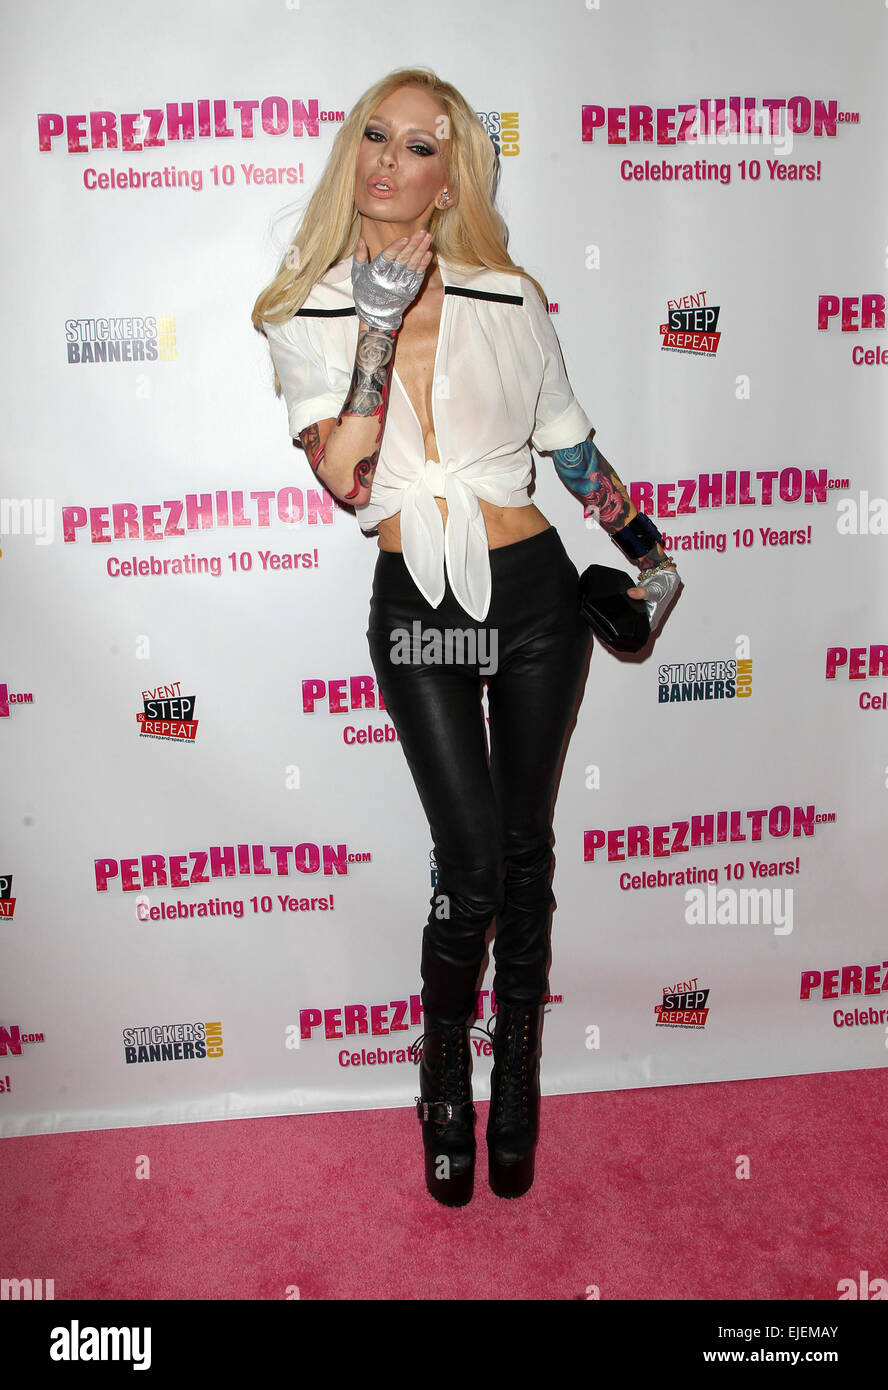 Perez Hilton 10th Anniversary Party Arrivals Featuring